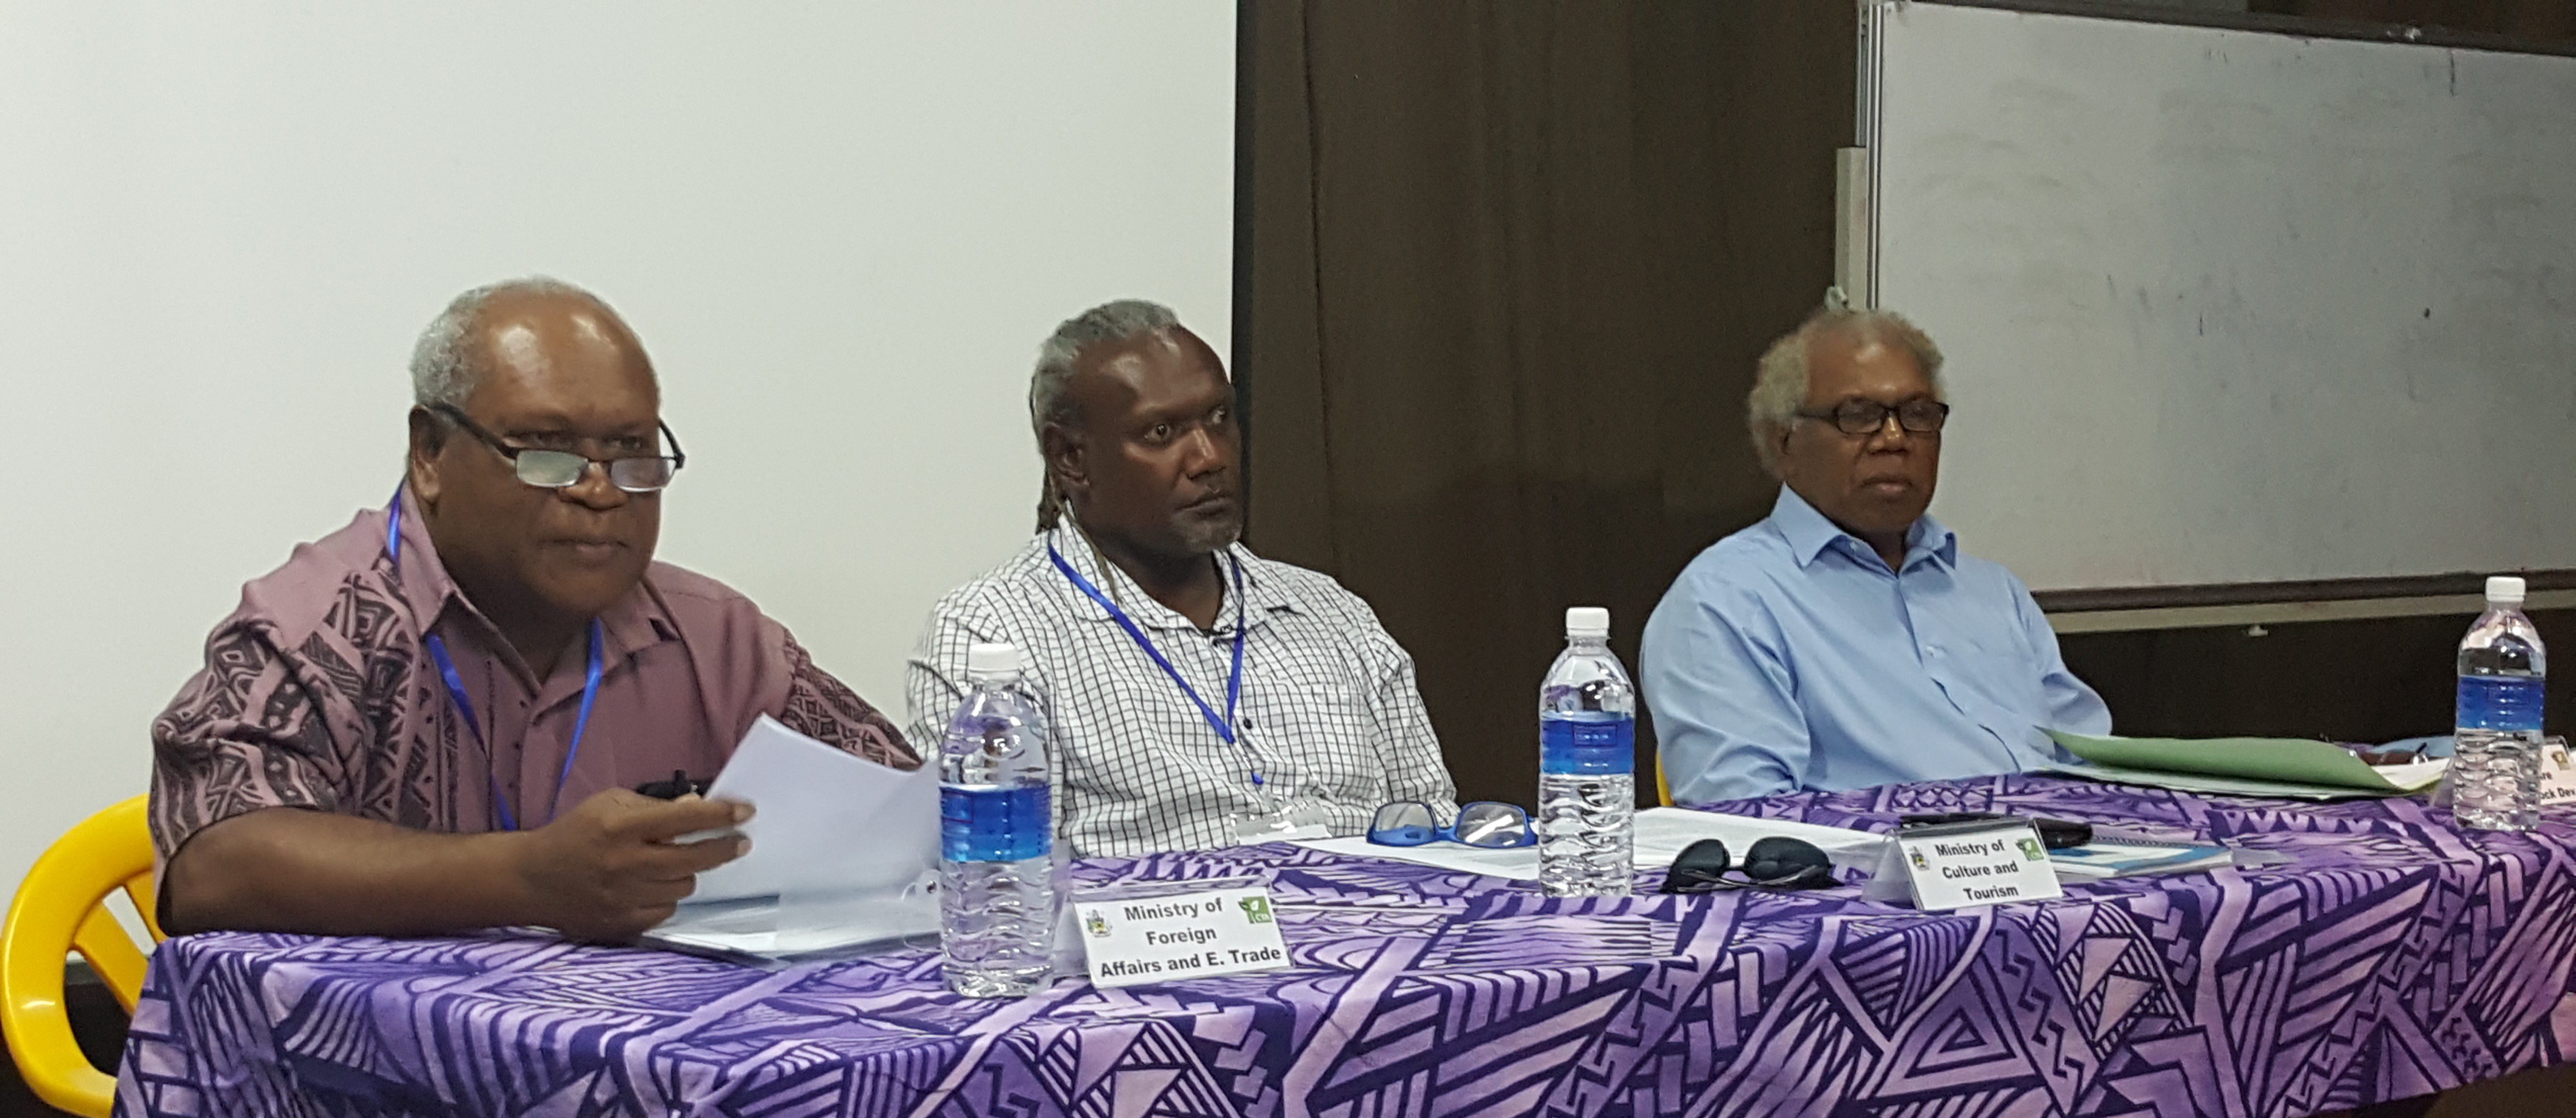 Solomon Islands embarks on an agritourism policy